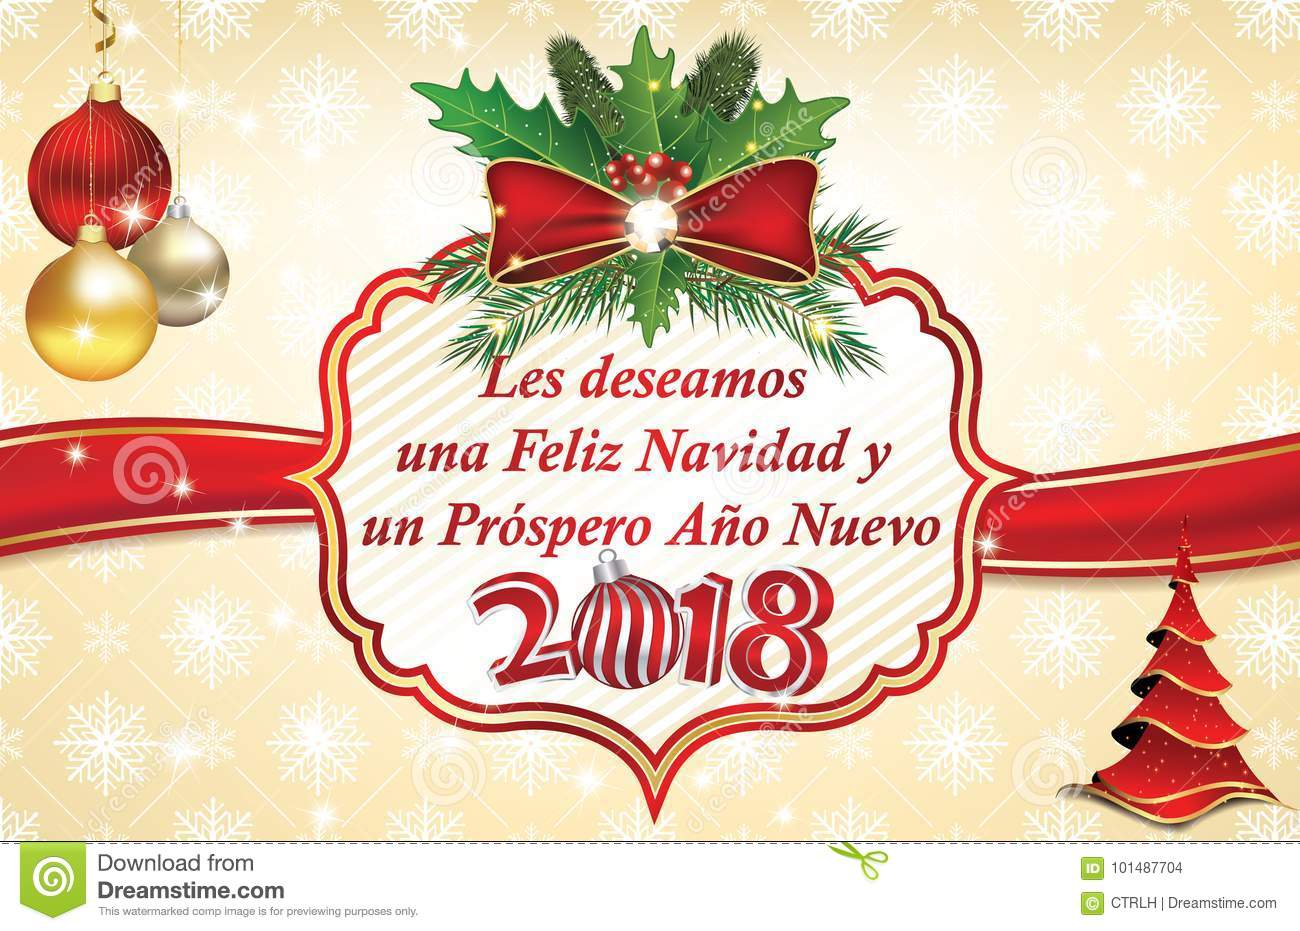 Winter holidays christmas and new year greeting card in spanish elegant winter holiday greeting card in spanish language we wish you merry christmas and a happy new year les deseamos una feliz navidad un prospero ano m4hsunfo